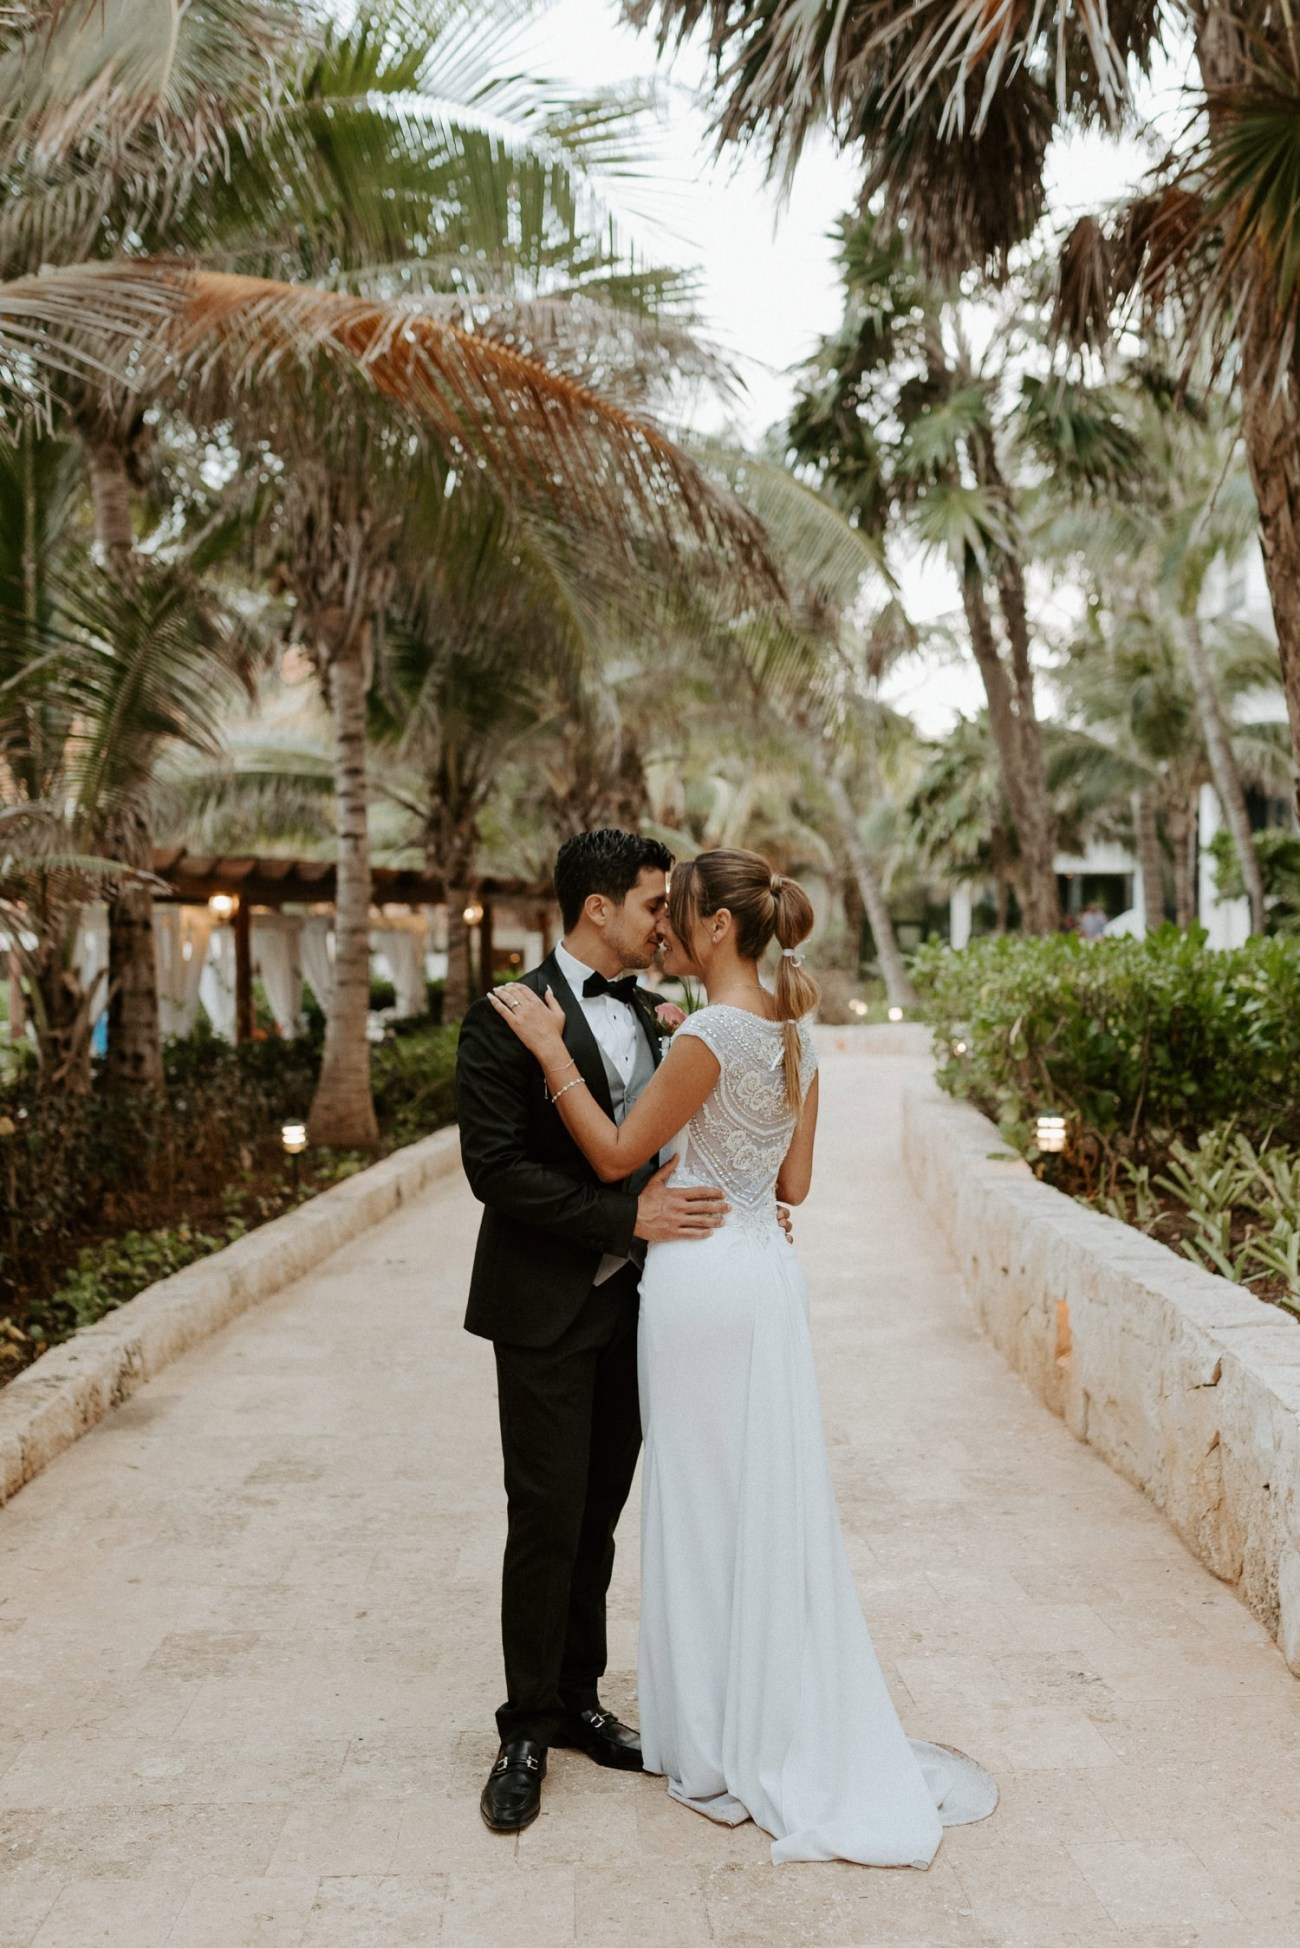 Cancun Destination Wedding Mexico Tulum Wedding Photographer Anais Possamai Photography 055